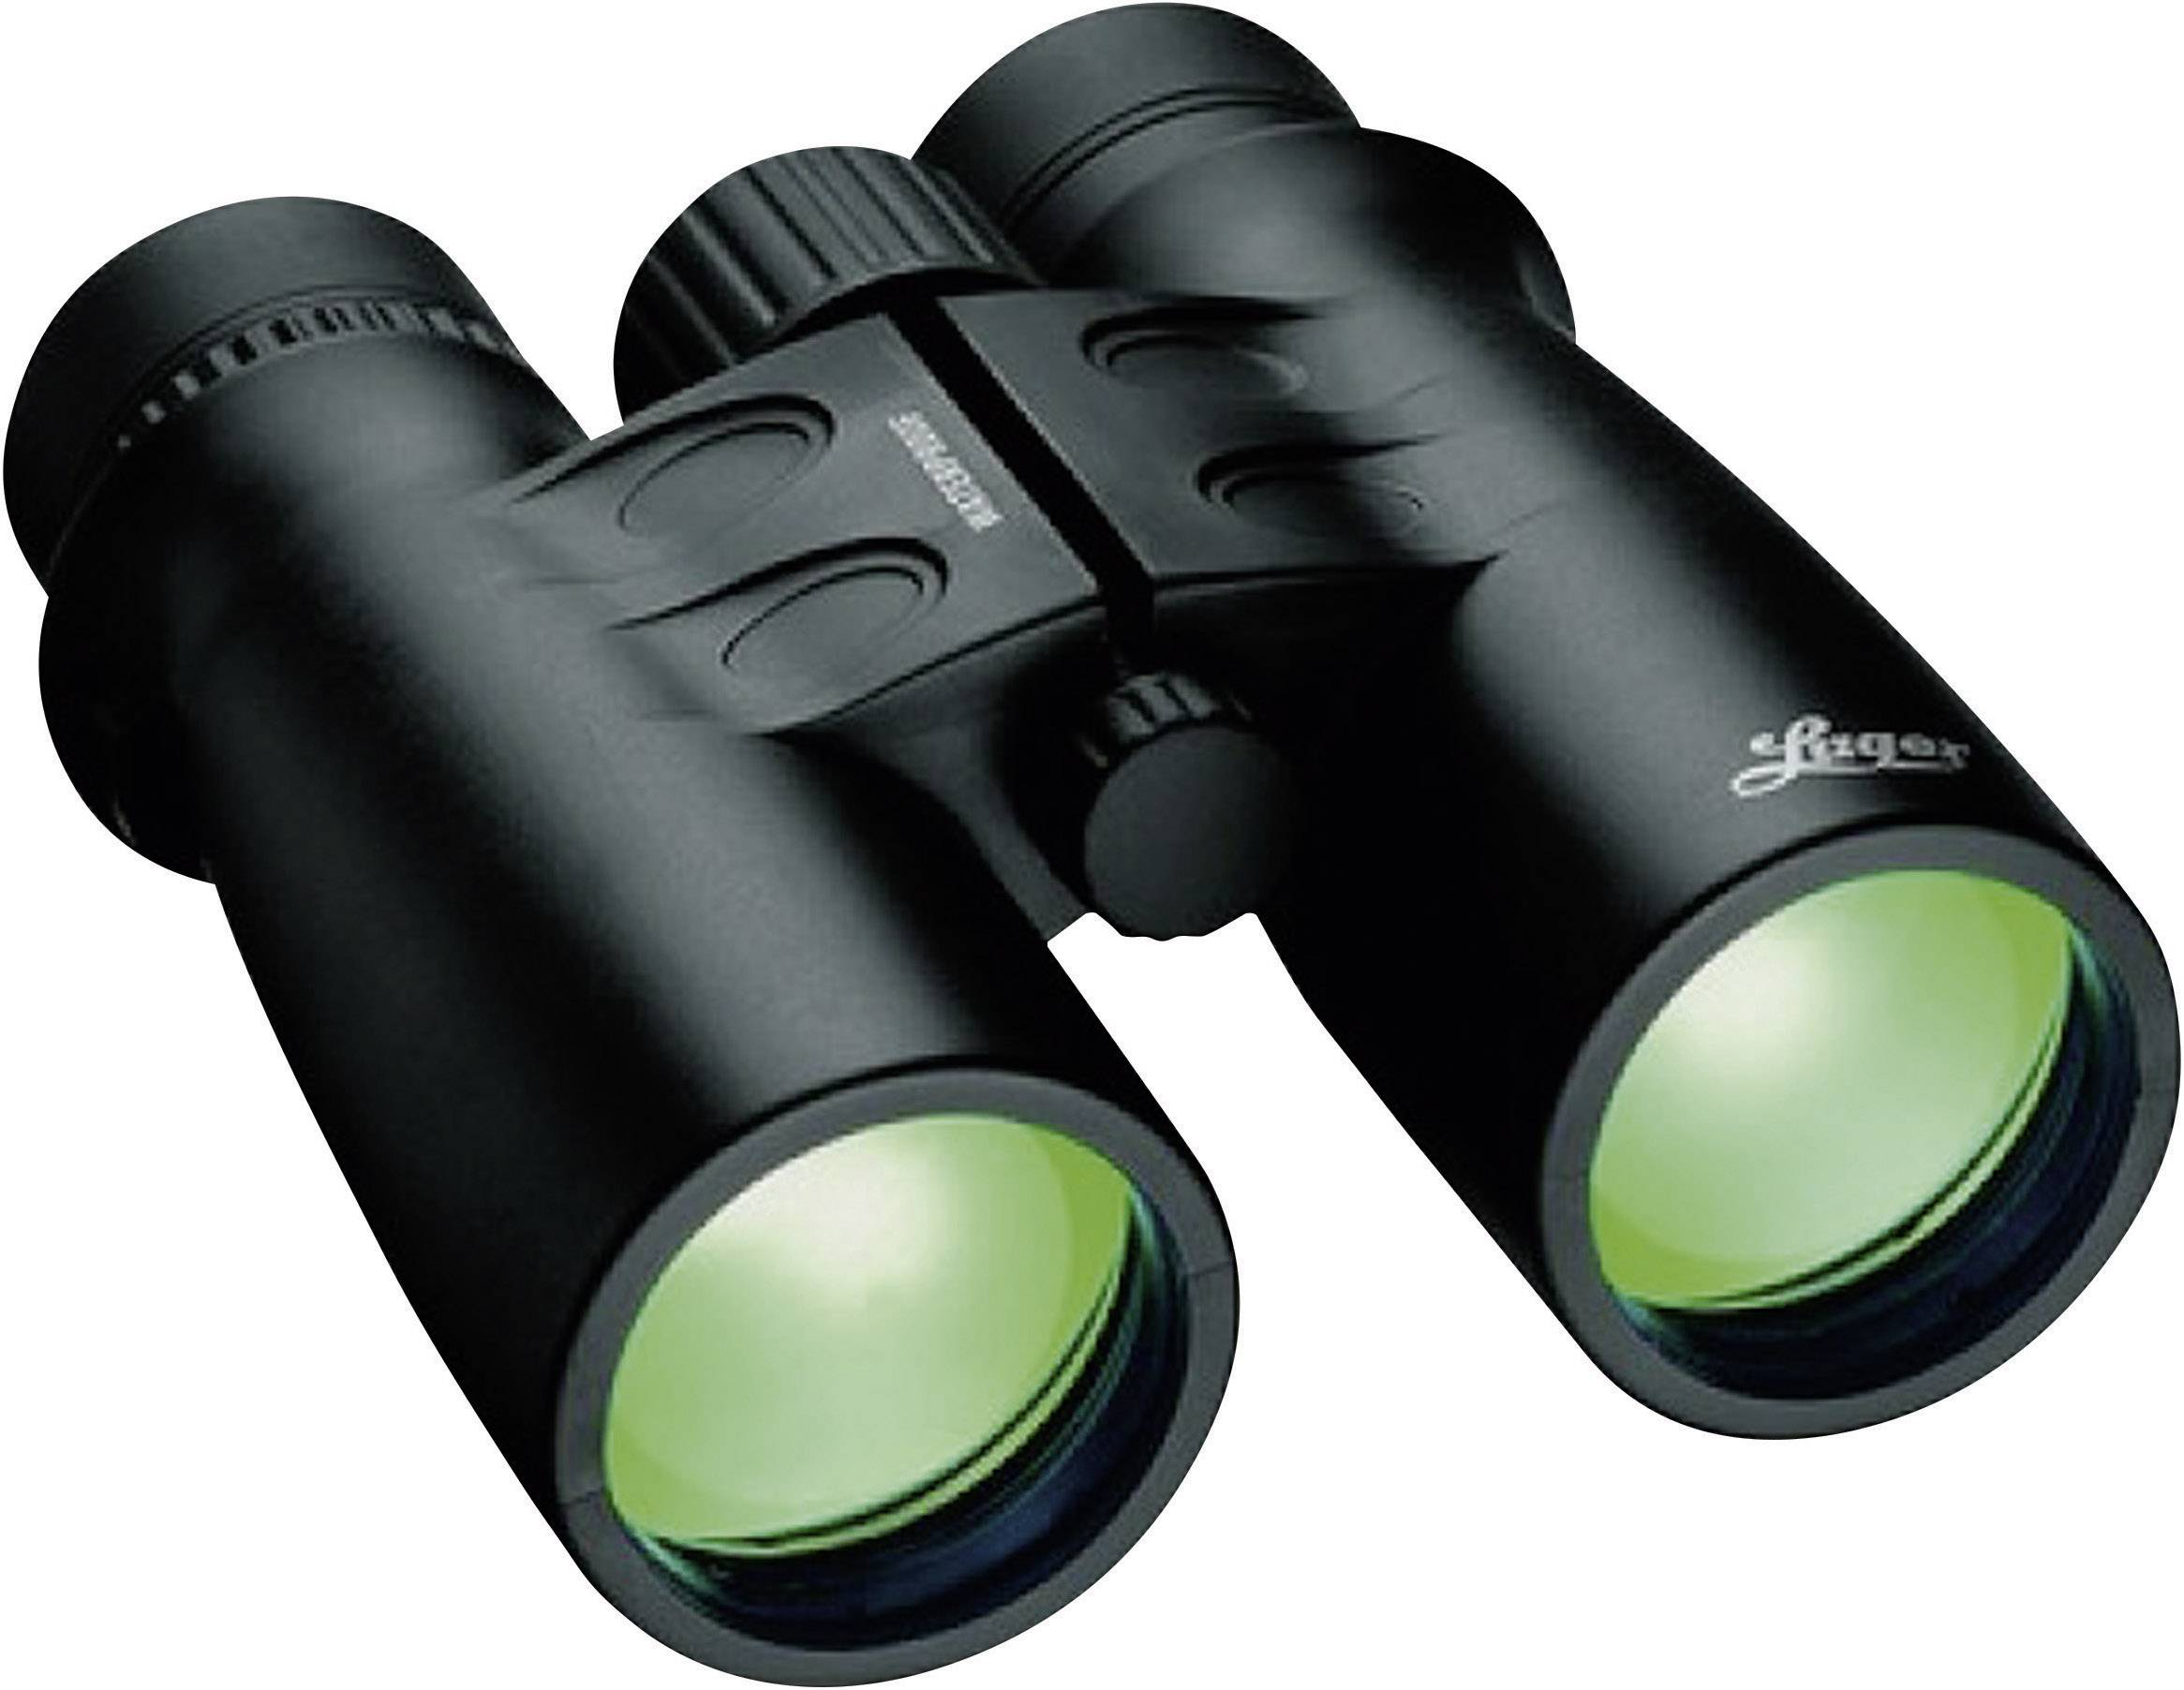 Canon binocular l is wp fernglas top zustand eur